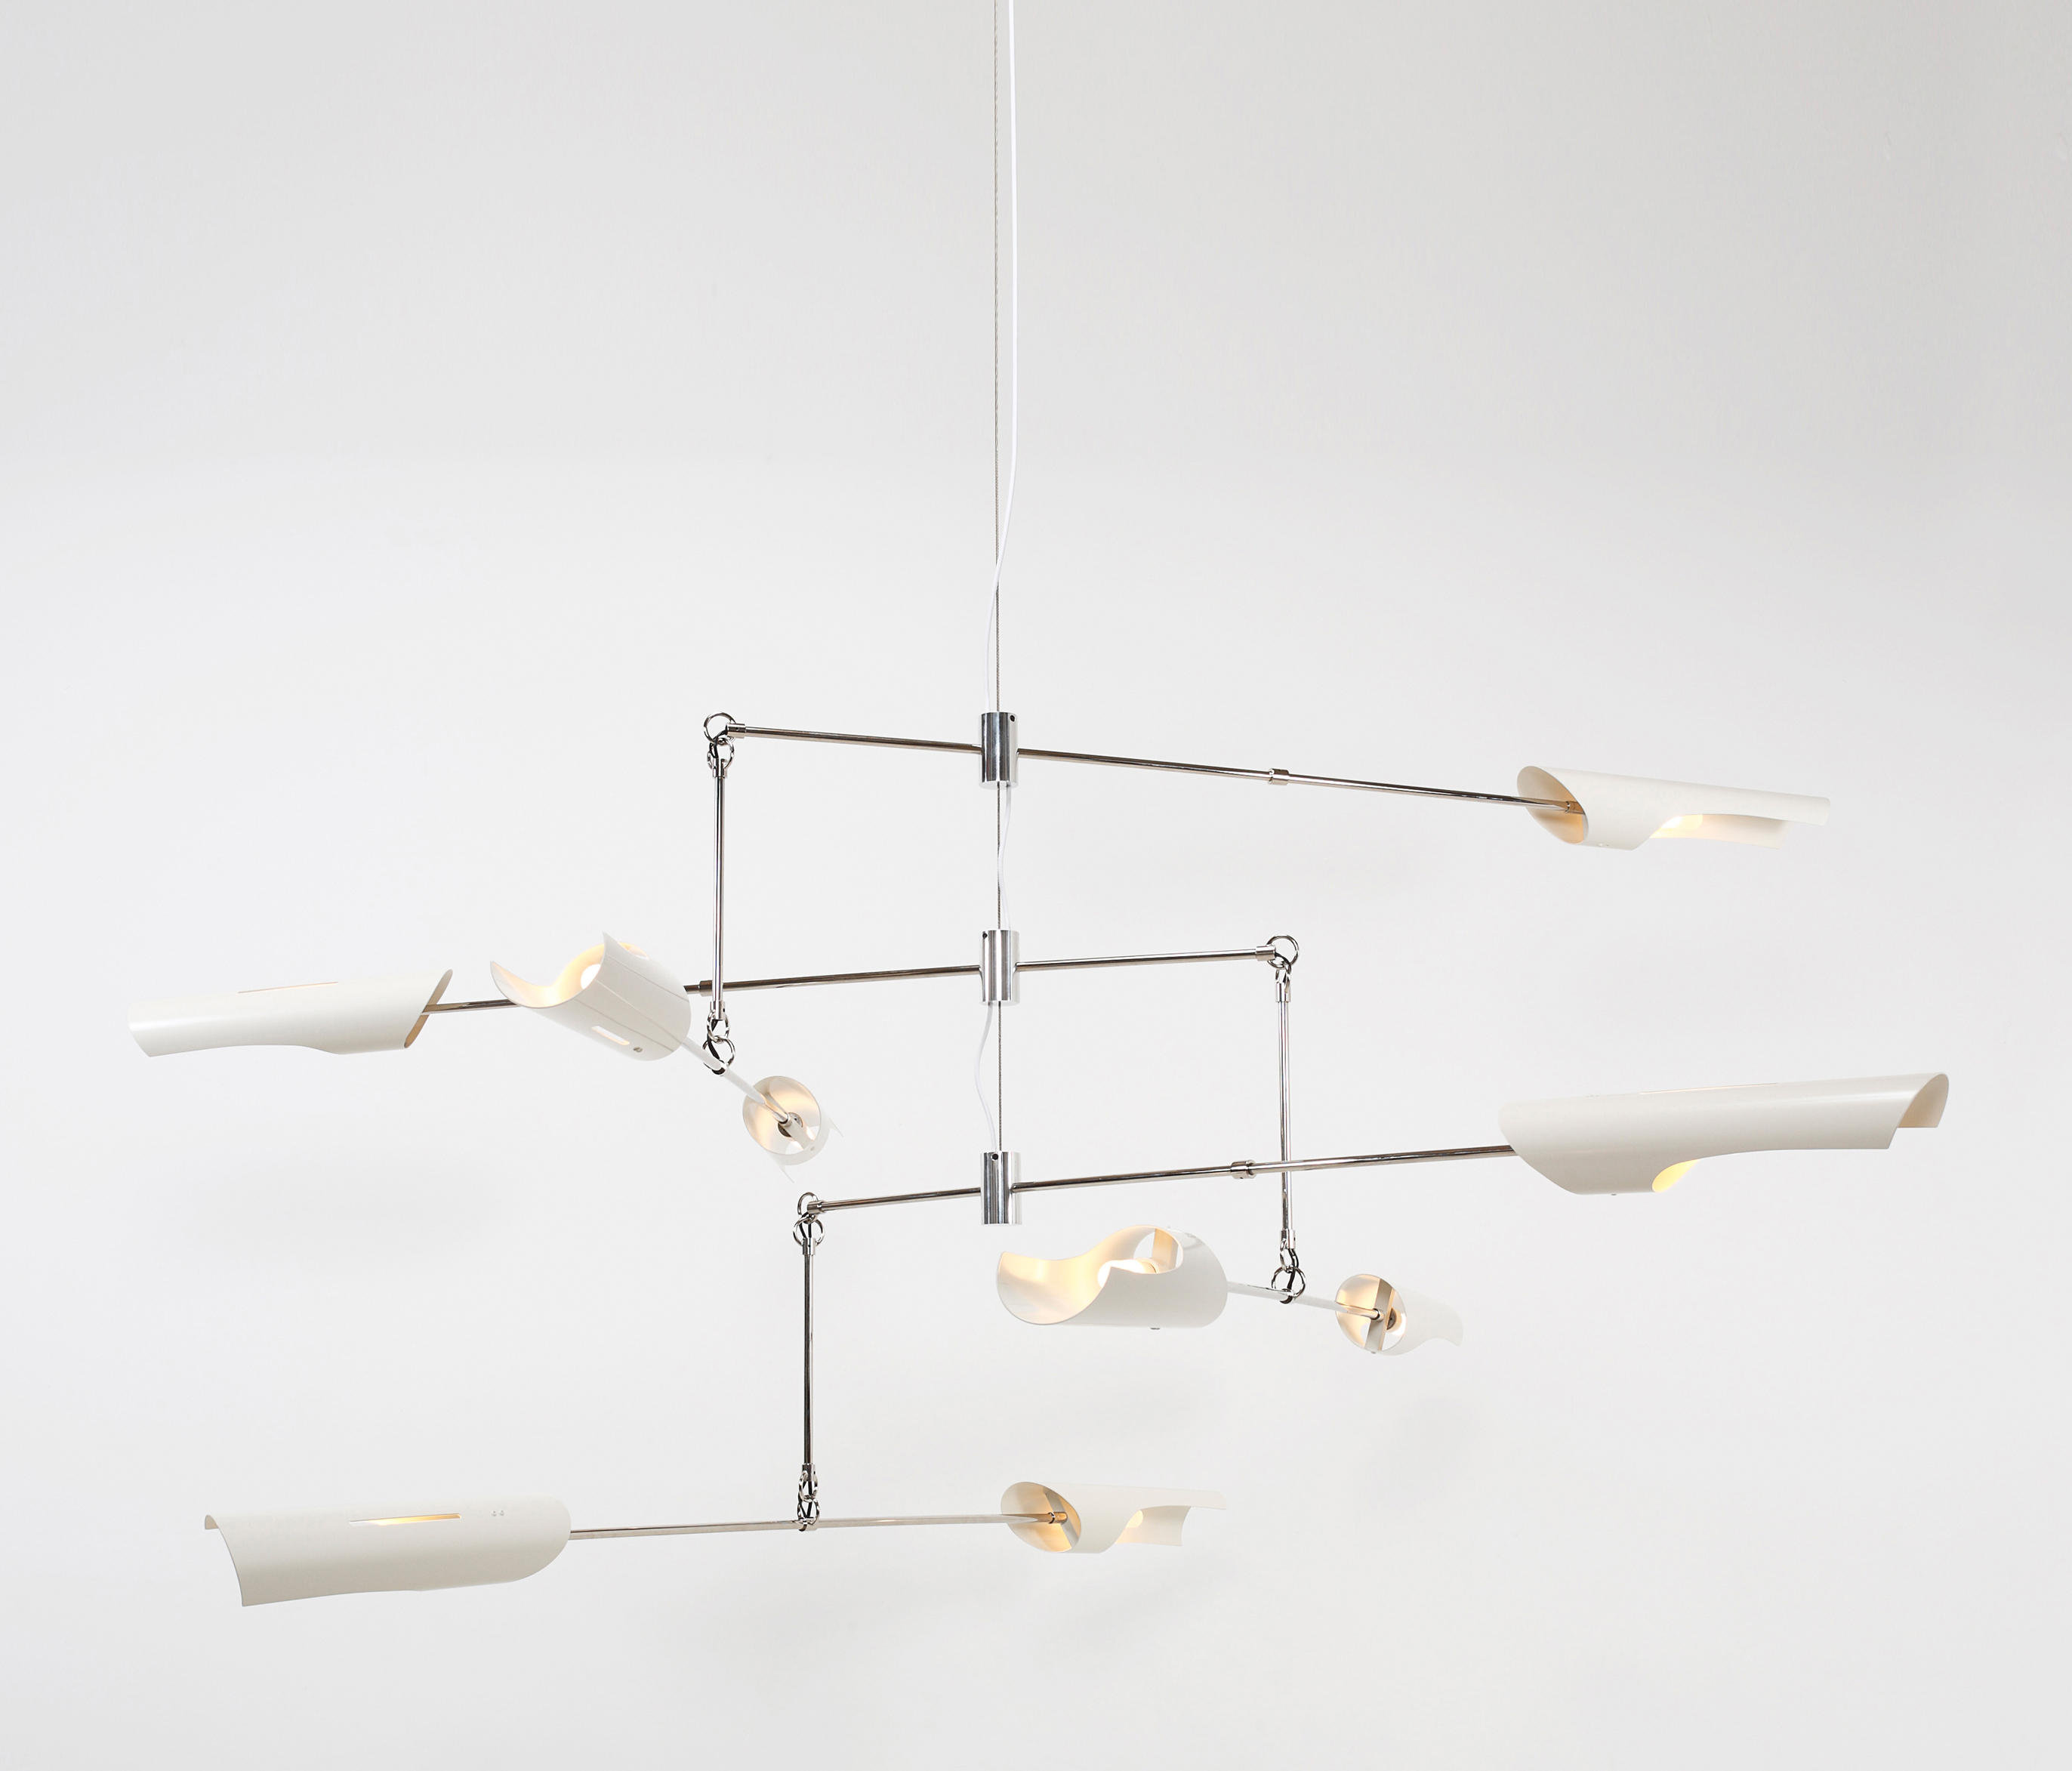 Torroja Mobile No 429 By David Weeks Studio Suspended Lights